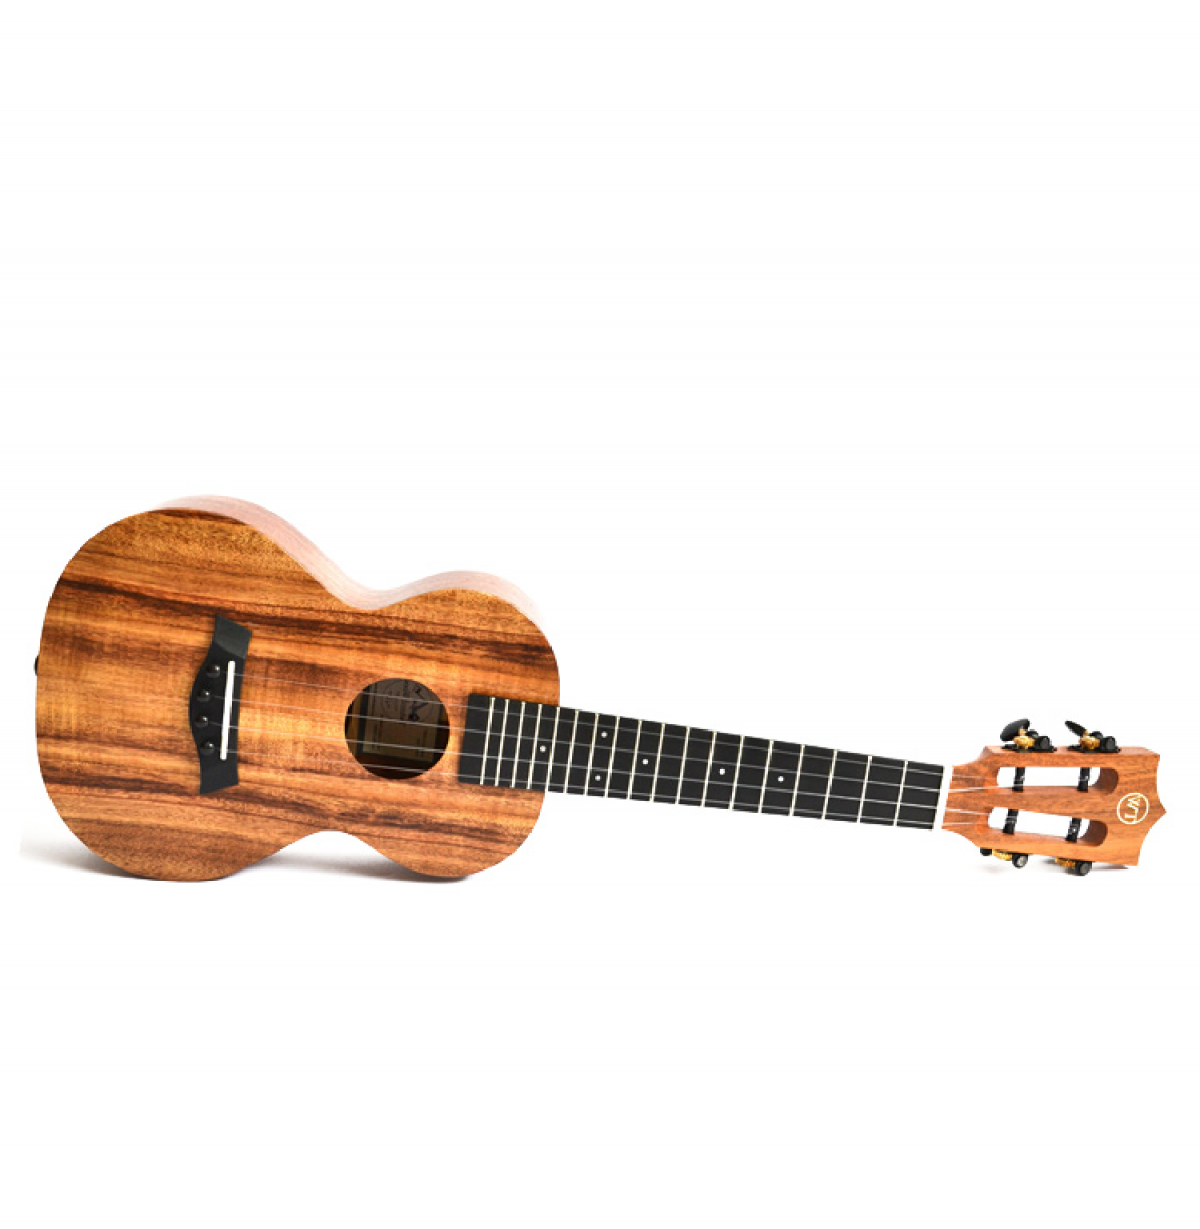 Twisted Wood Koa Ukulele - KO1000 down